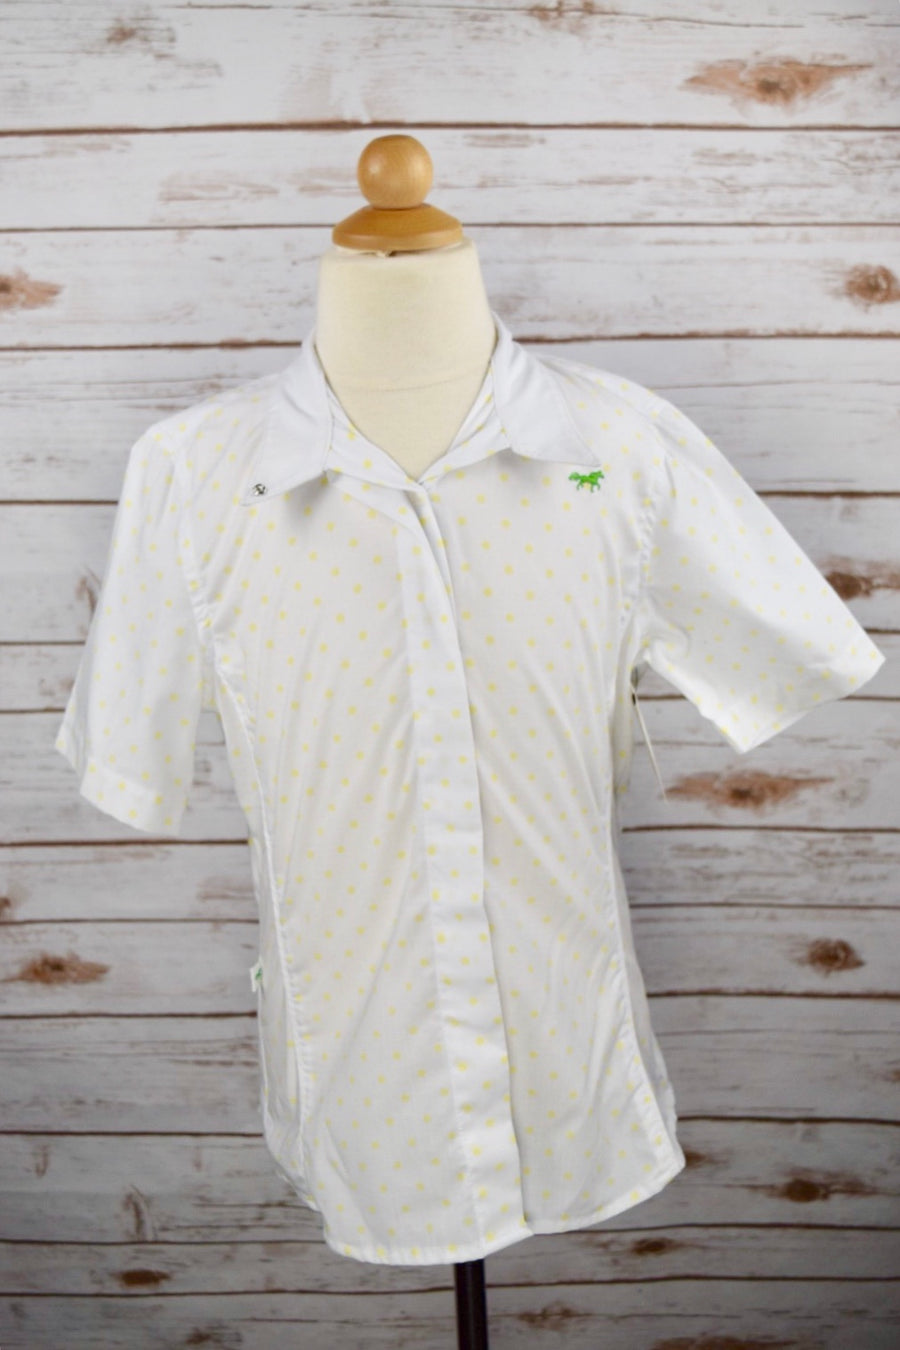 Clever Human Short Sleeve Show Shirt in White /Yellow Polka Dot -  Front View